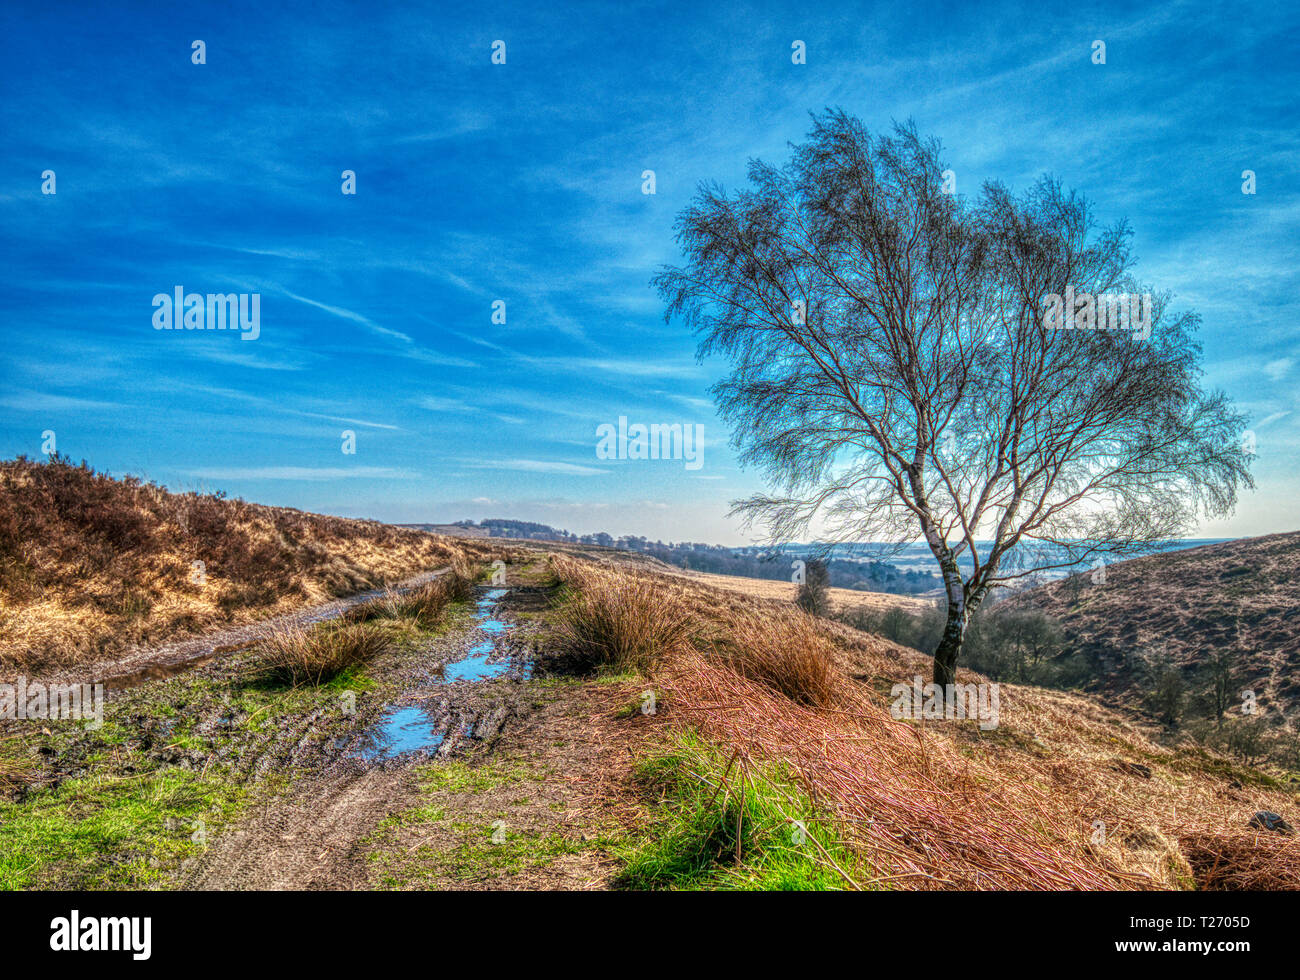 Barbrook, Derbyshire, UK. 30th March, 2019. UK Weather: Bright blue sky on a warm sunny day in the Barbrook Valley, Peak District. HDR landscape photography. Credit: Doug Blane/Alamy Live News Stock Photo